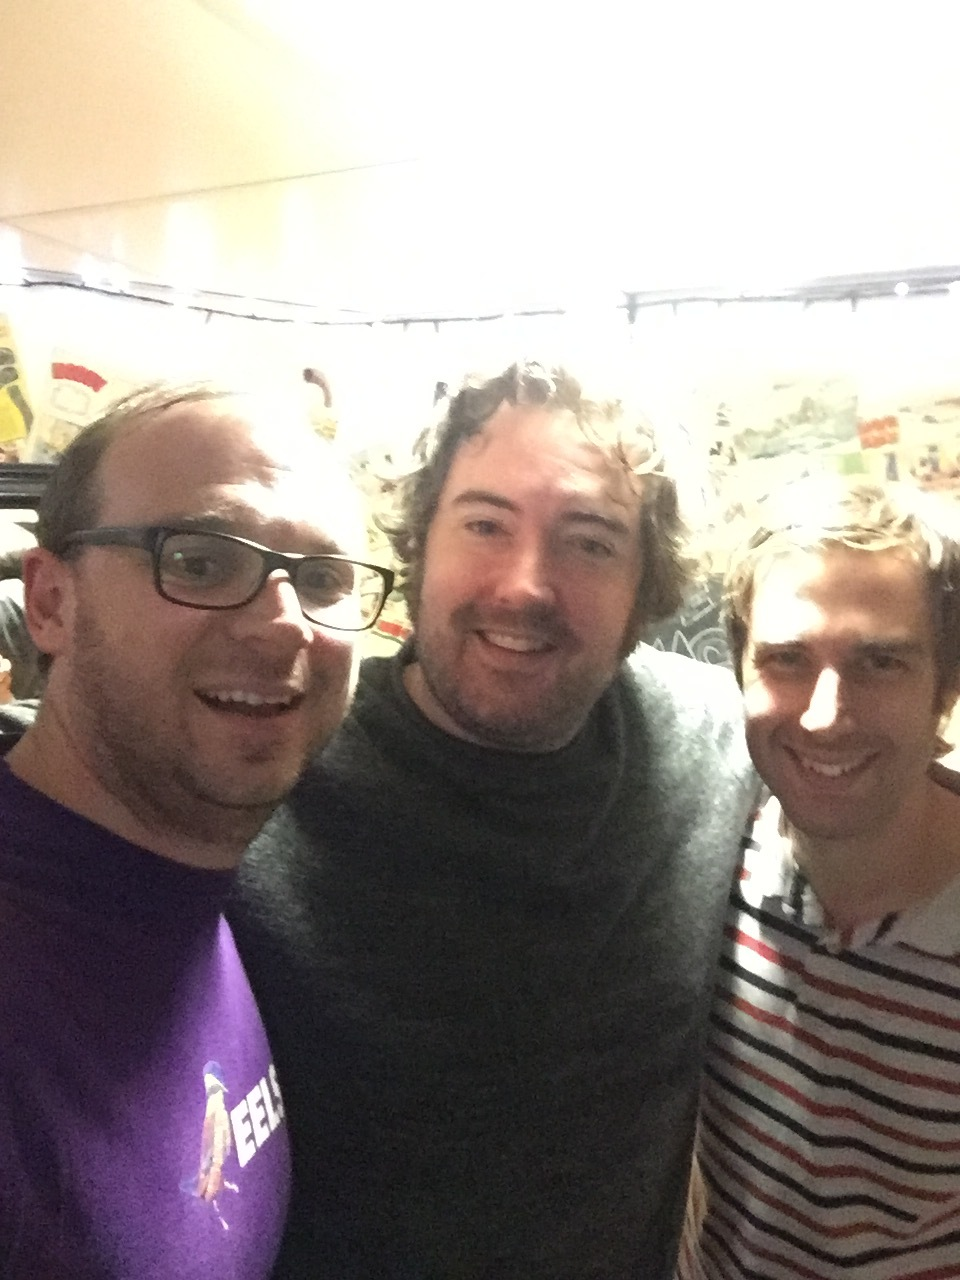 The wonderfully pleasant Nick Helm. We clearly left our lighting rig at home for this photo.